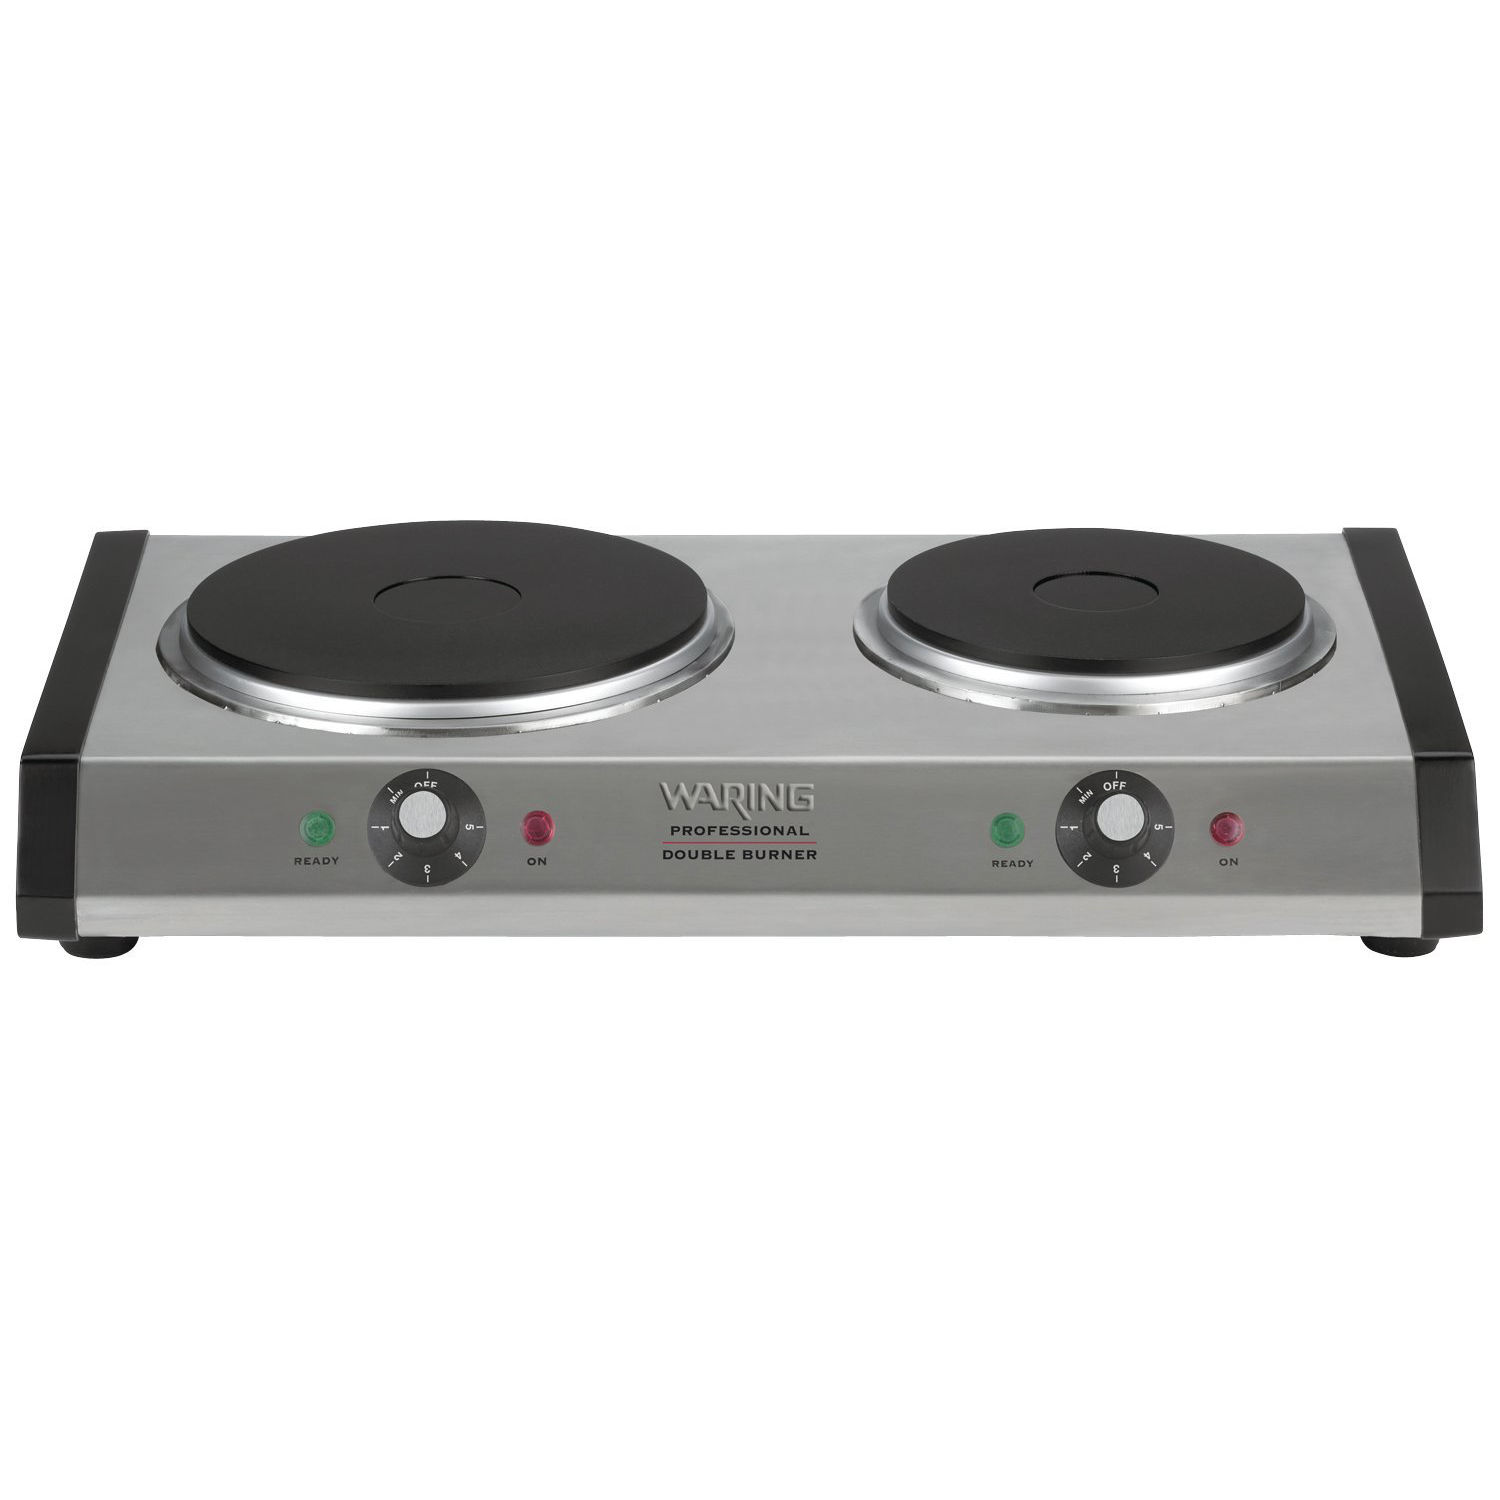 WARING-COMMERCIAL Db60 Portable Double Burner